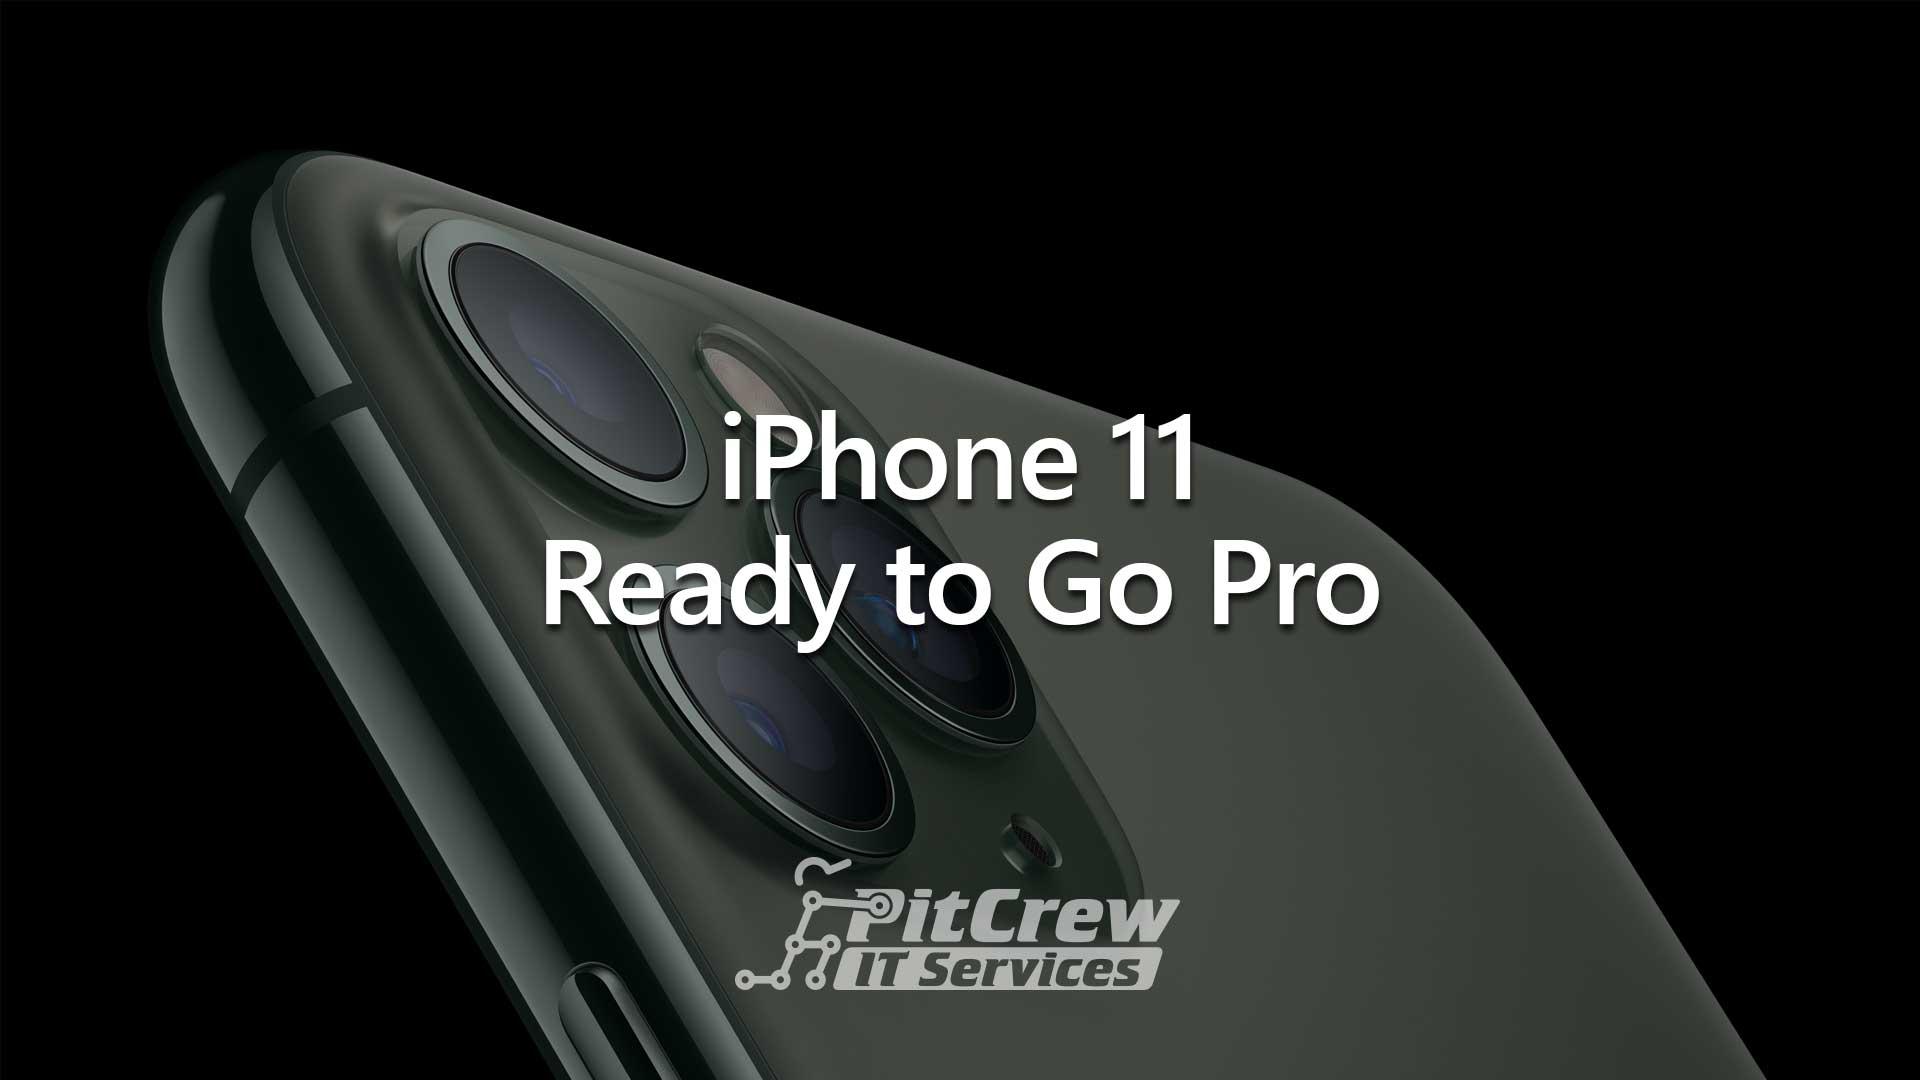 iPhone 11 Ready to go Pro